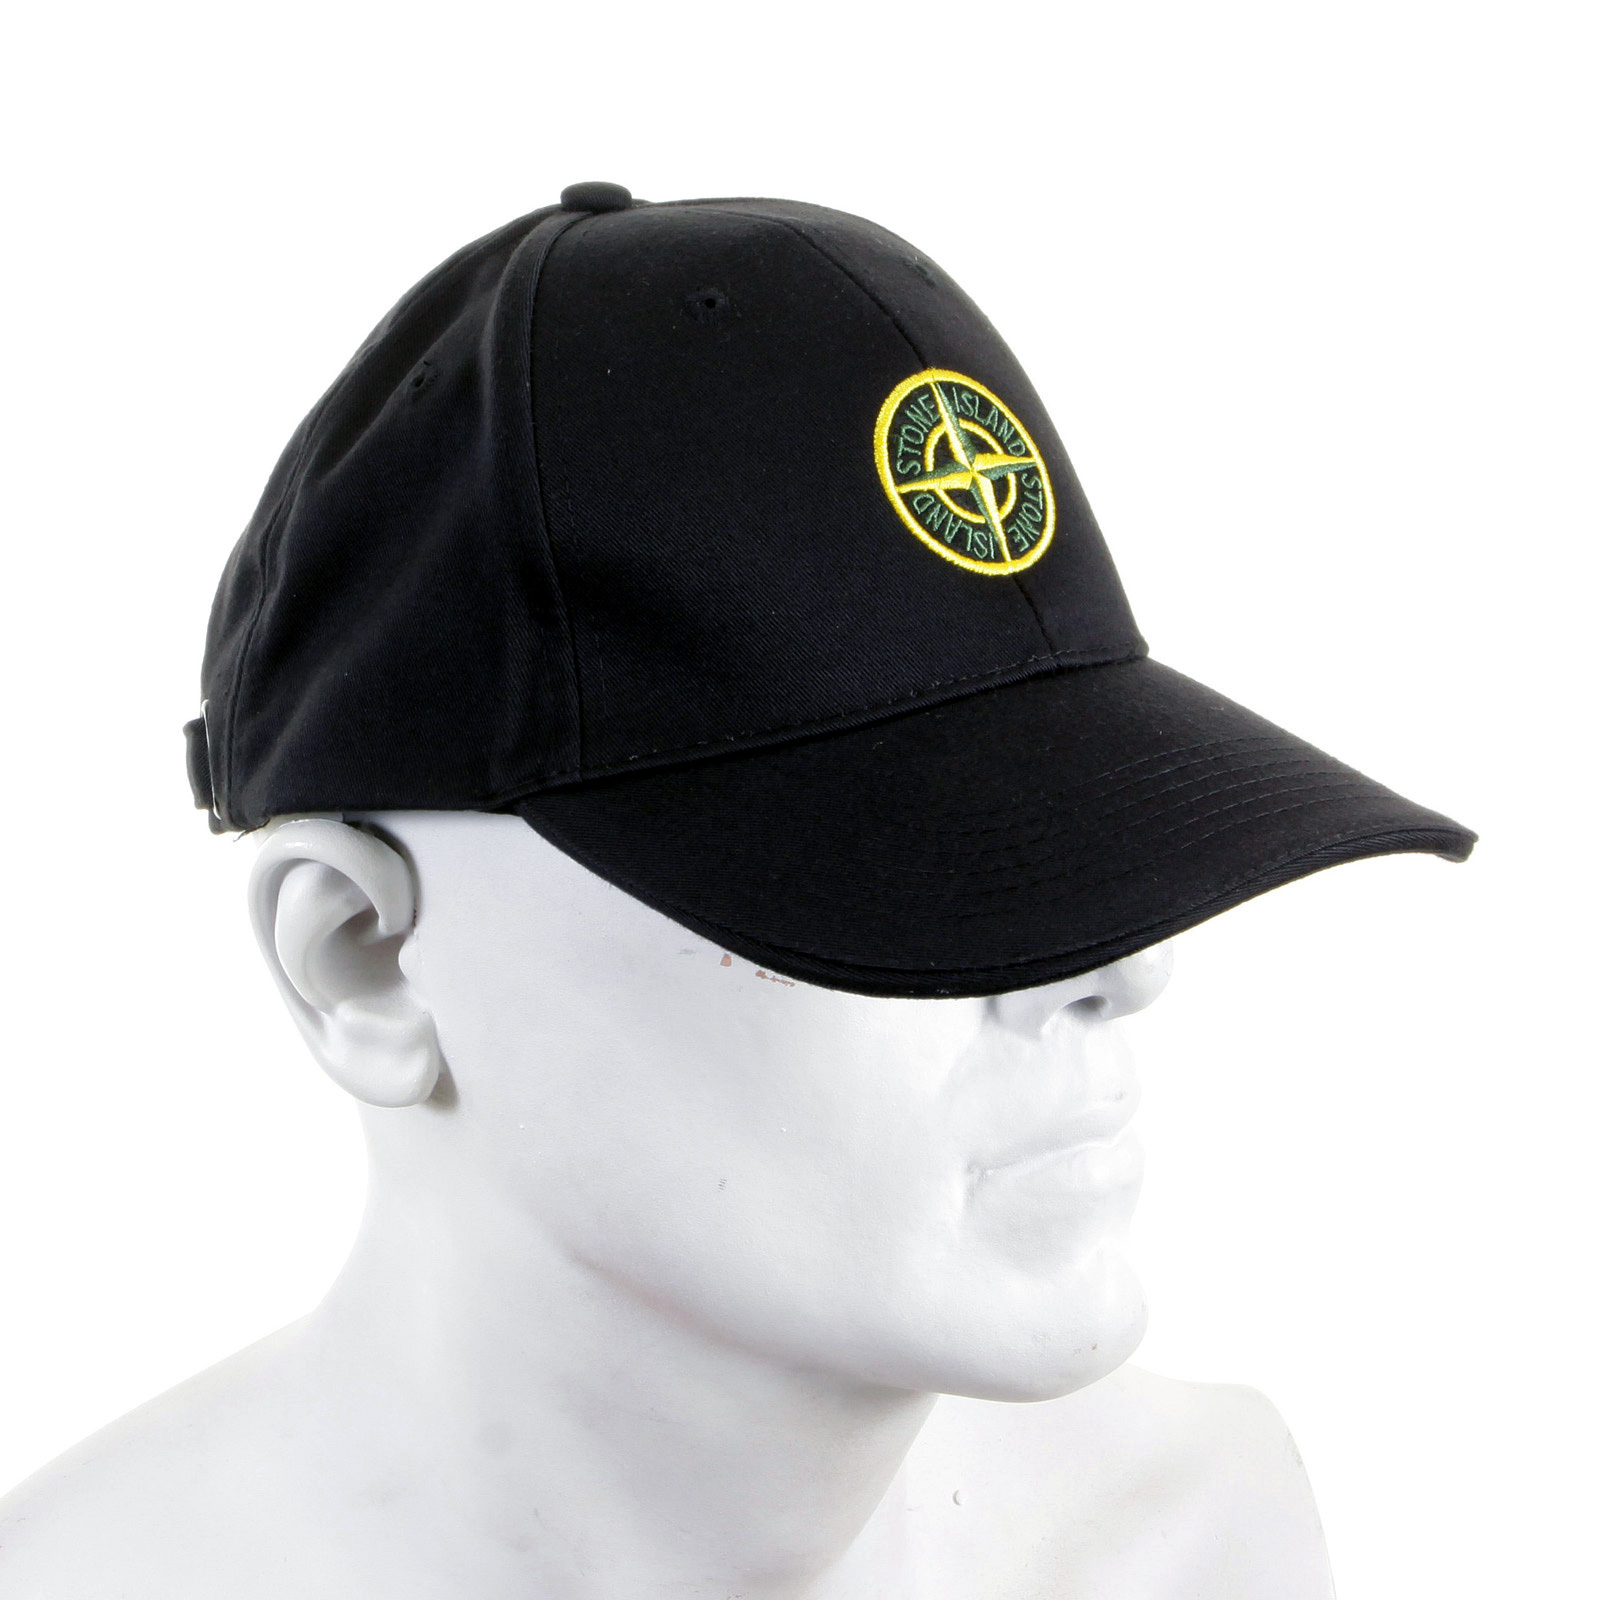 8783c12a534a7 Stone Island Cap black cotton baseball cap SI2756 at Togged Clothing